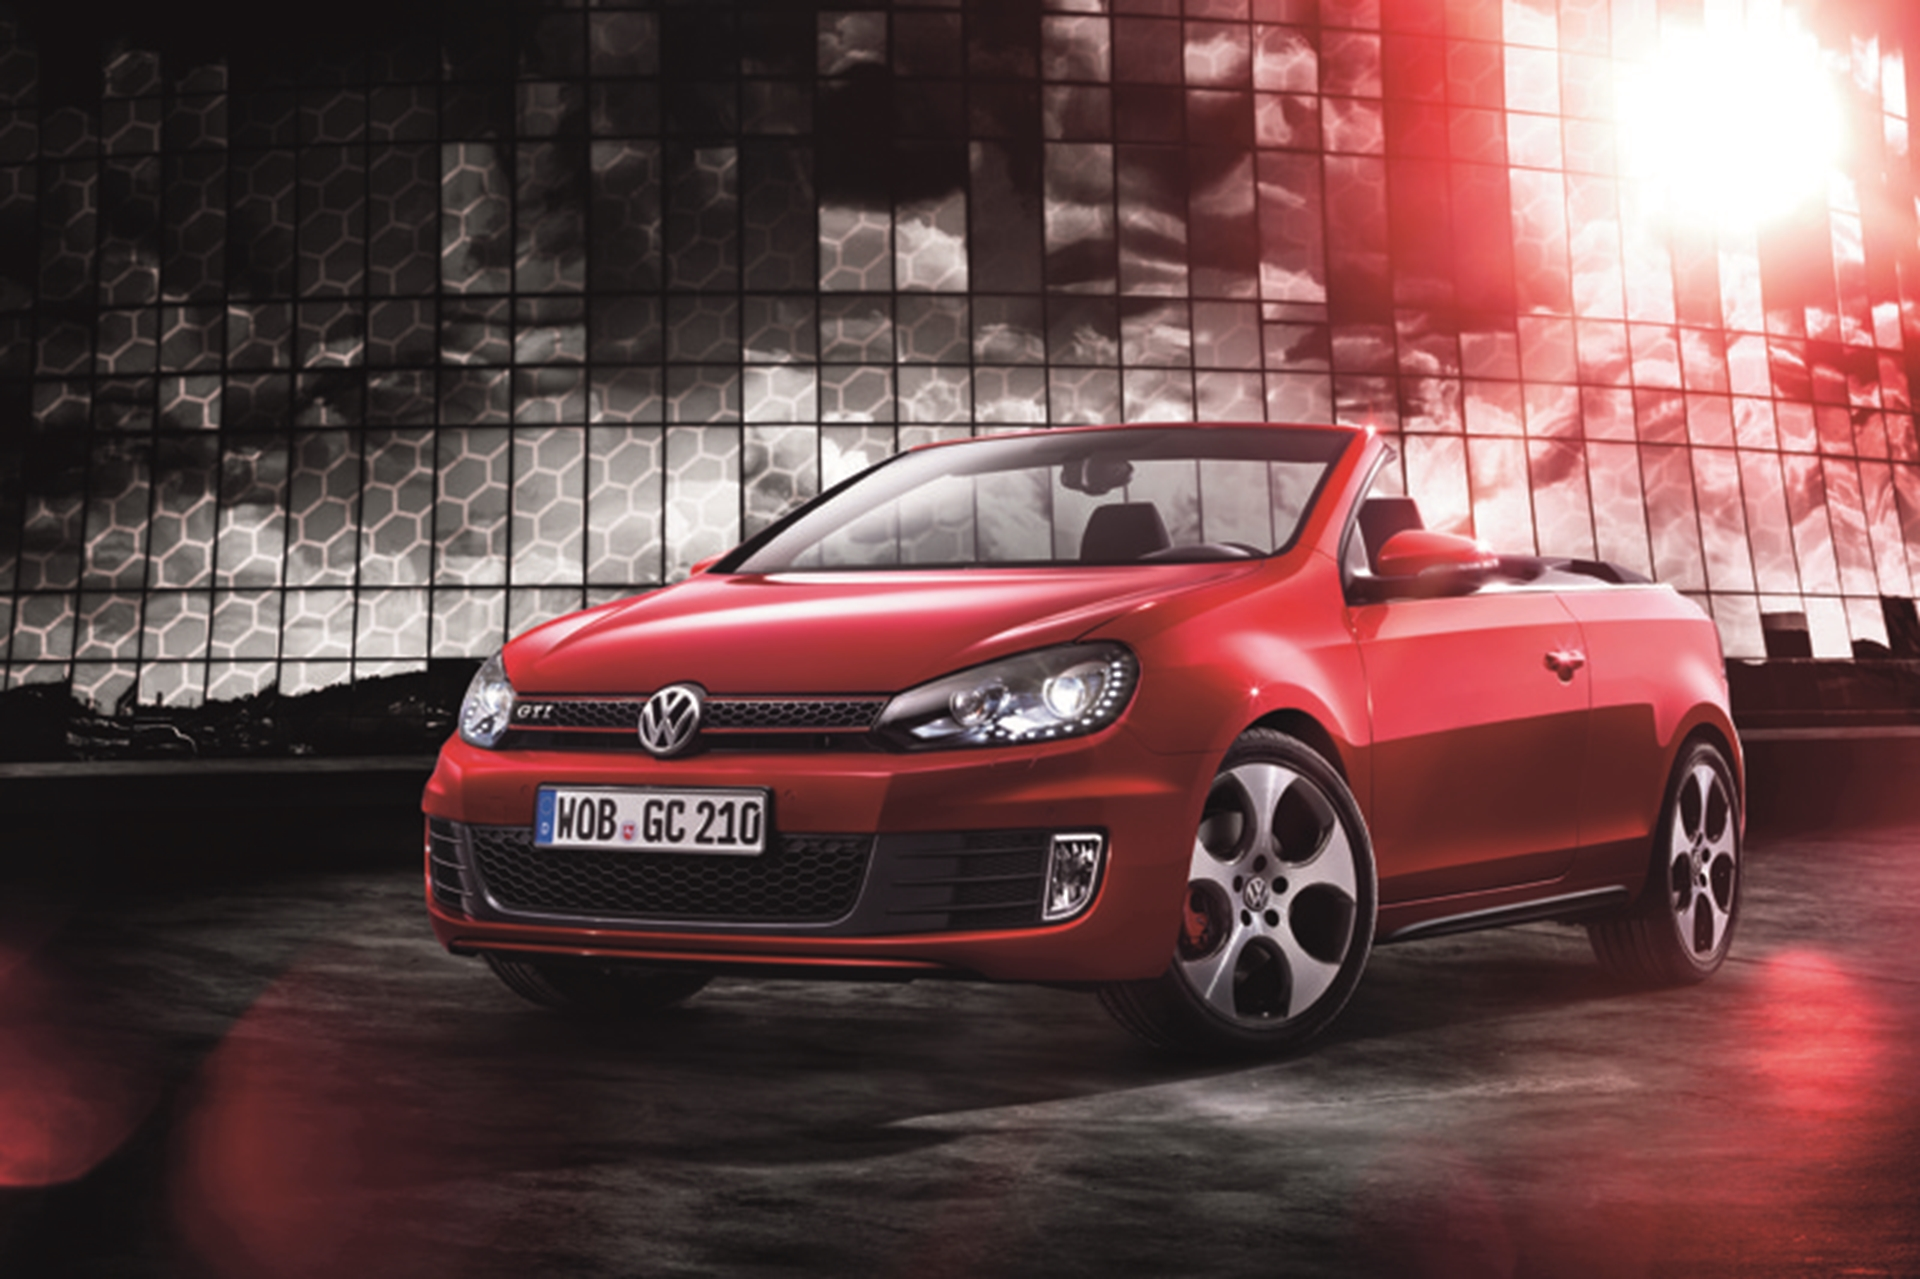 Golf GTI Cabriolet New 2012